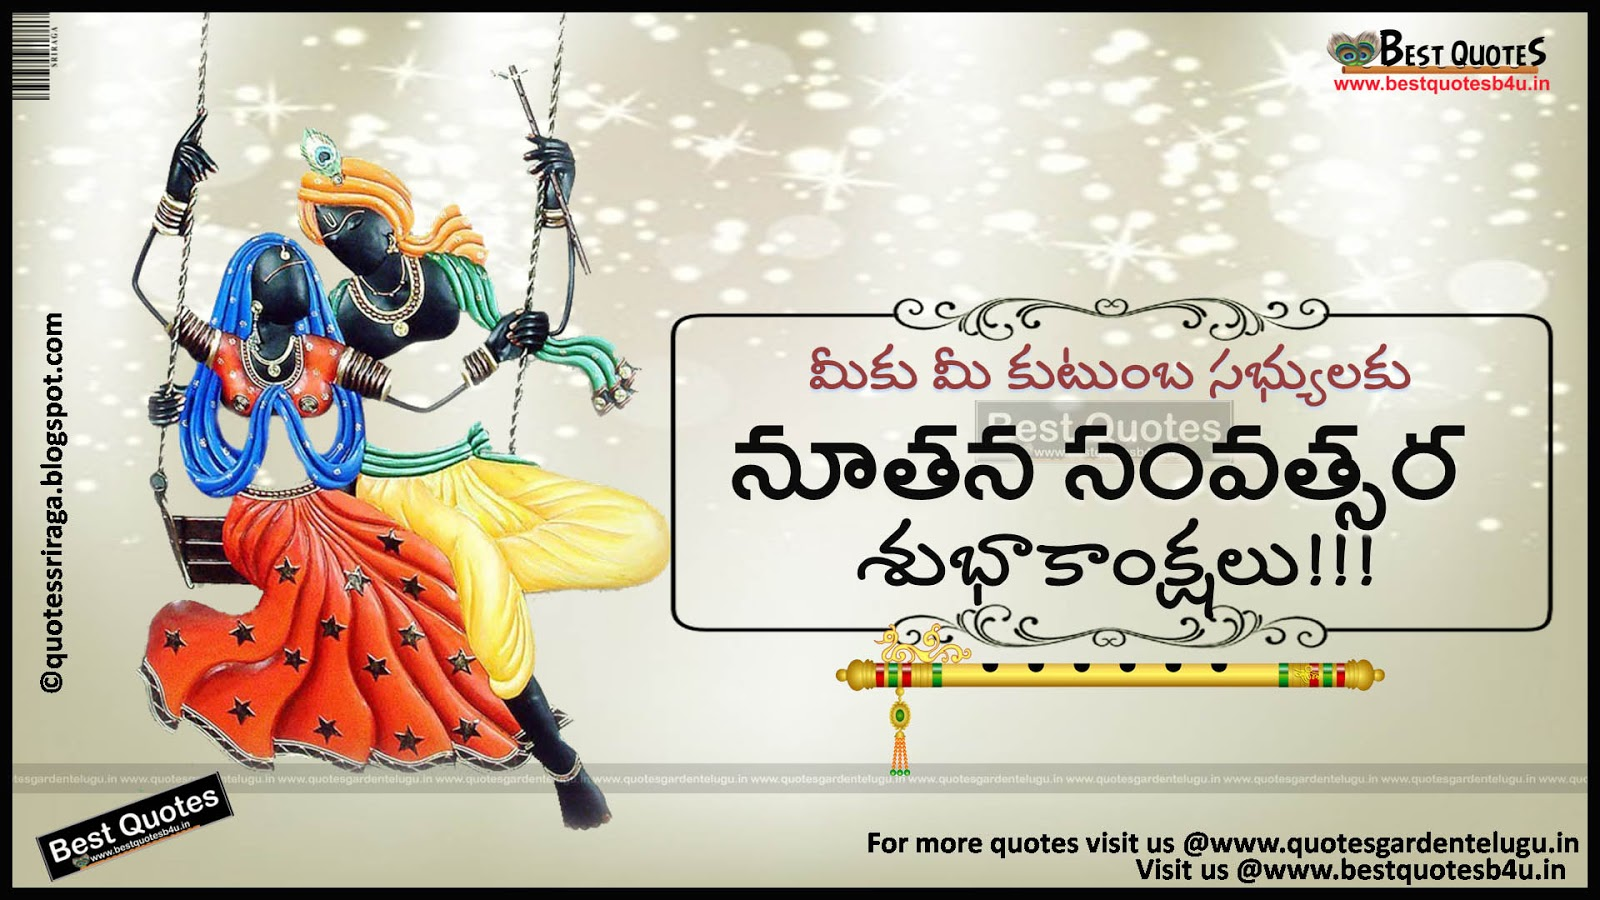 Happy new year telugu greetings with god images | QUOTES GARDEN ...